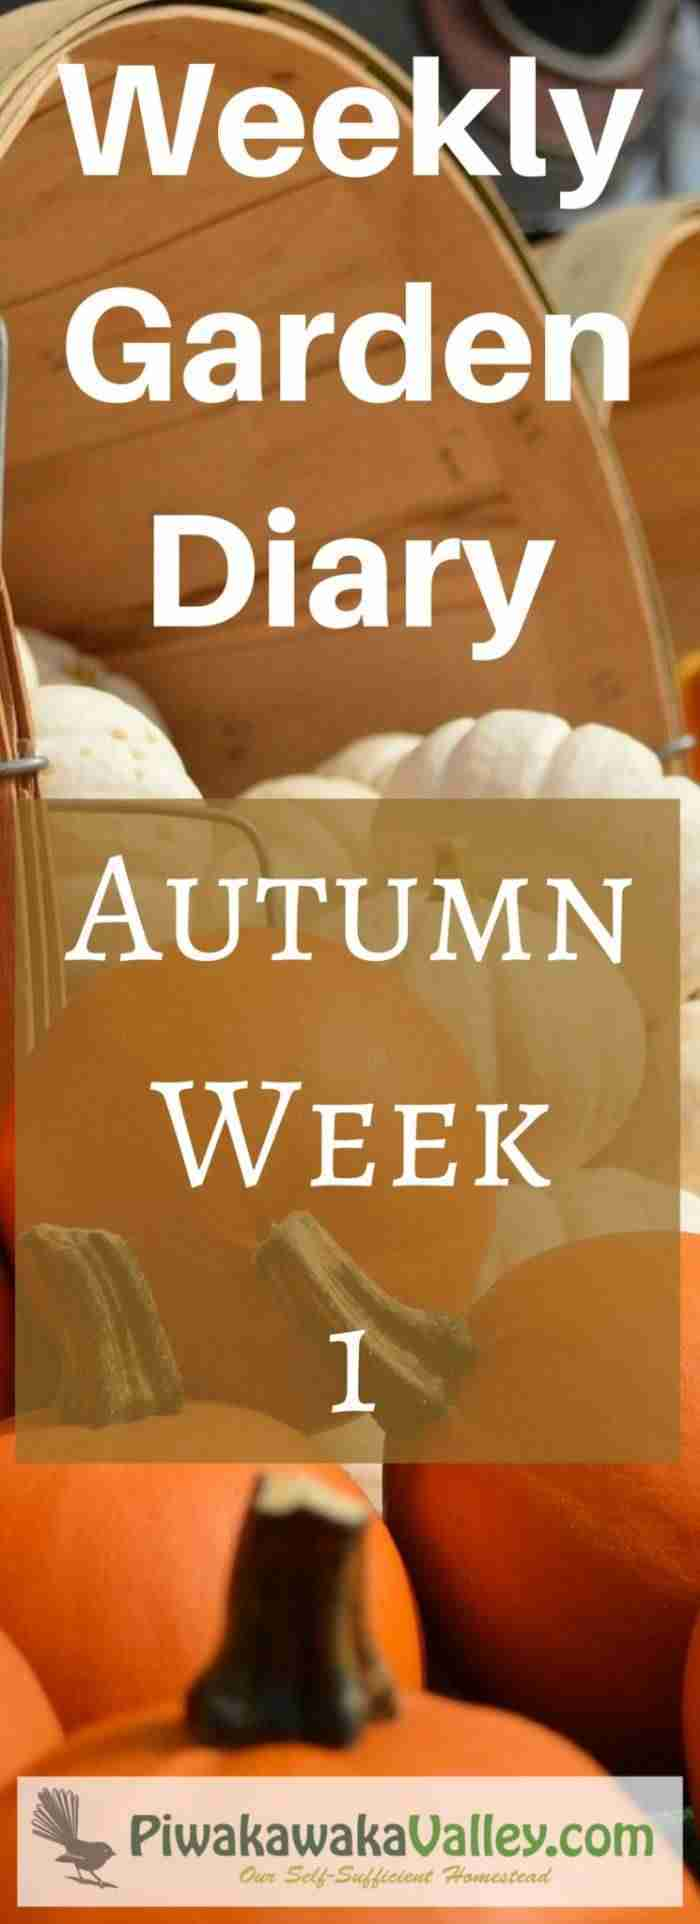 zone 9 weekly garden diary for autumn / fall week 1